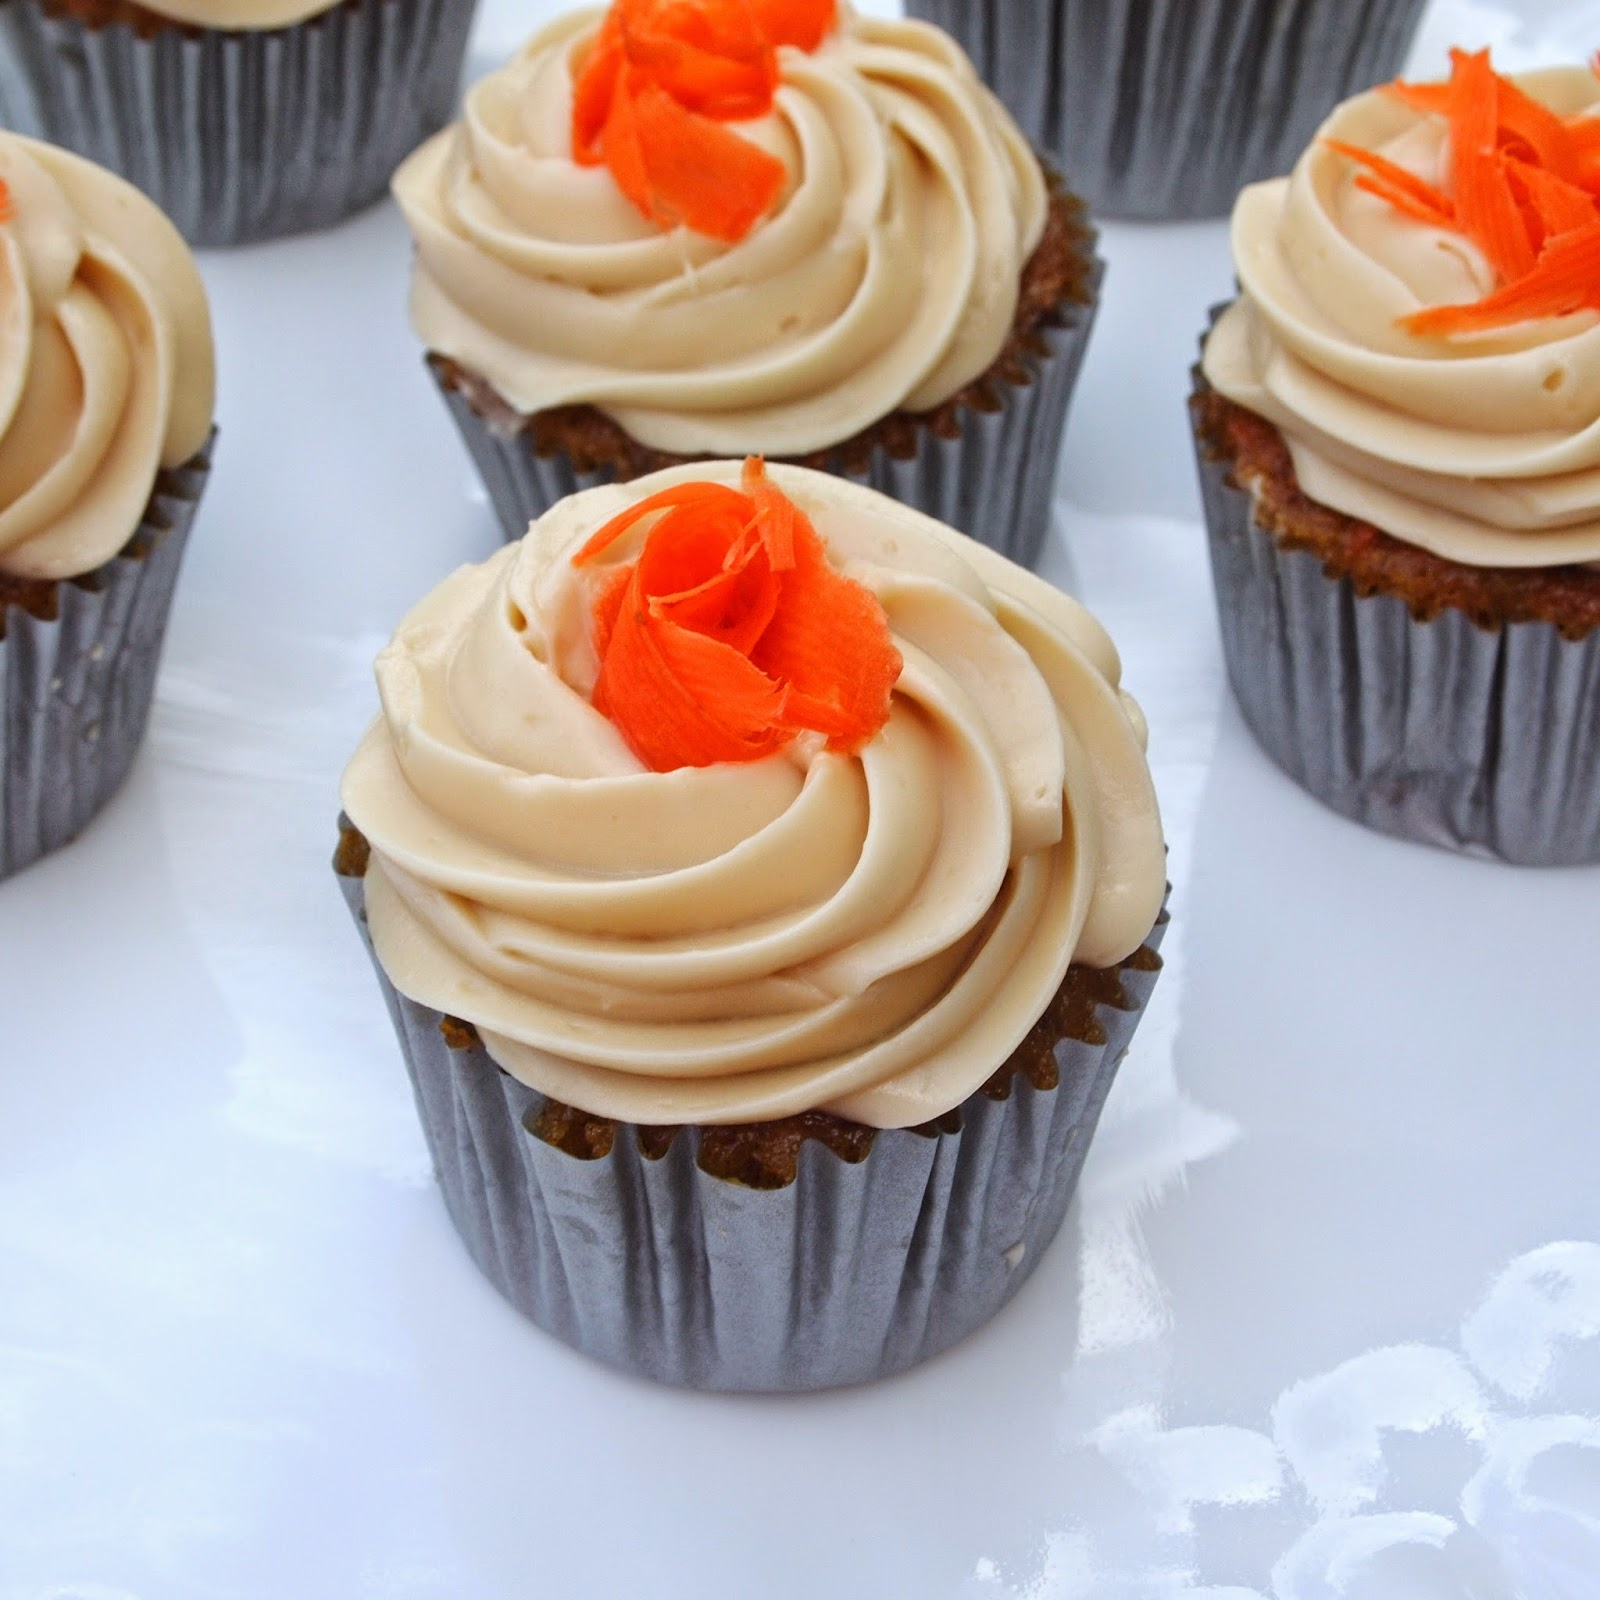 Cake With Cupcake Recipe : The Alchemist: The Very Best Moist Carrot Cake Cupcakes Recipe